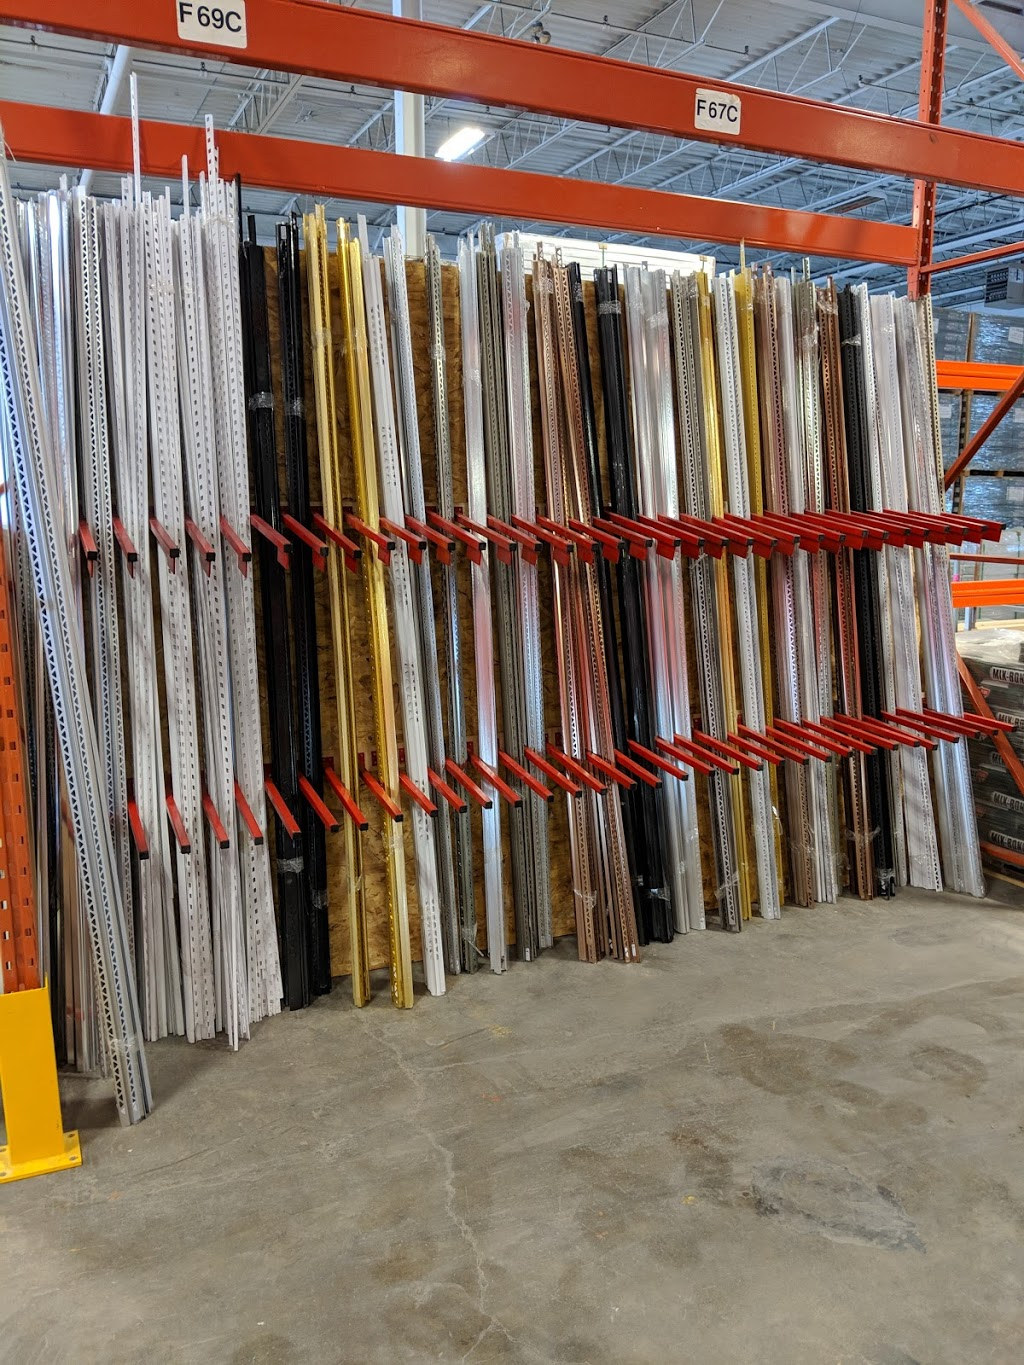 Cosmaroma | hardware store | 1601 Tricont Ave, Whitby, ON L1N 7N5, Canada | 9057234444 OR +1 905-723-4444